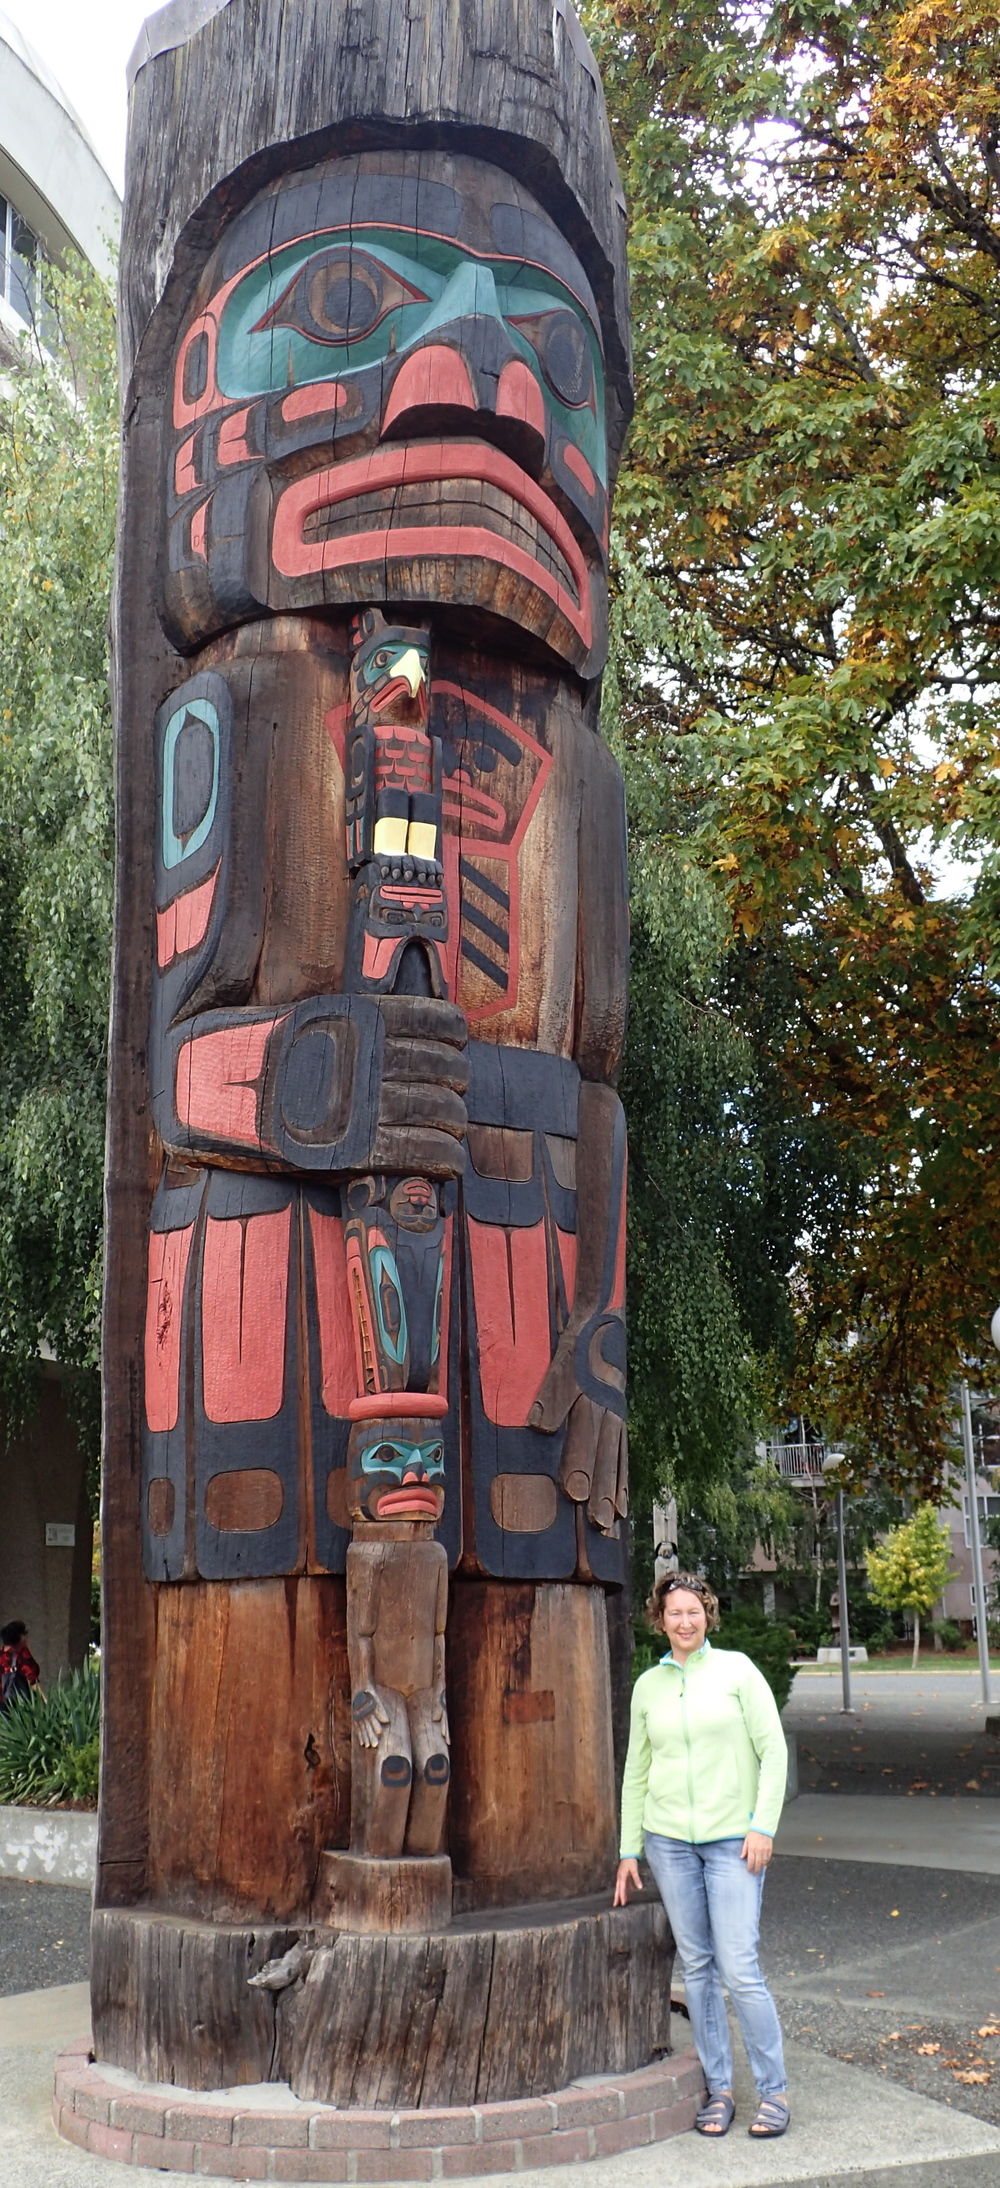 You can see the scale of the totem compared to my size.  This is definitely the widest totem I've ever seen.  I love it!  Thank you Richard for carving a masterpiece!